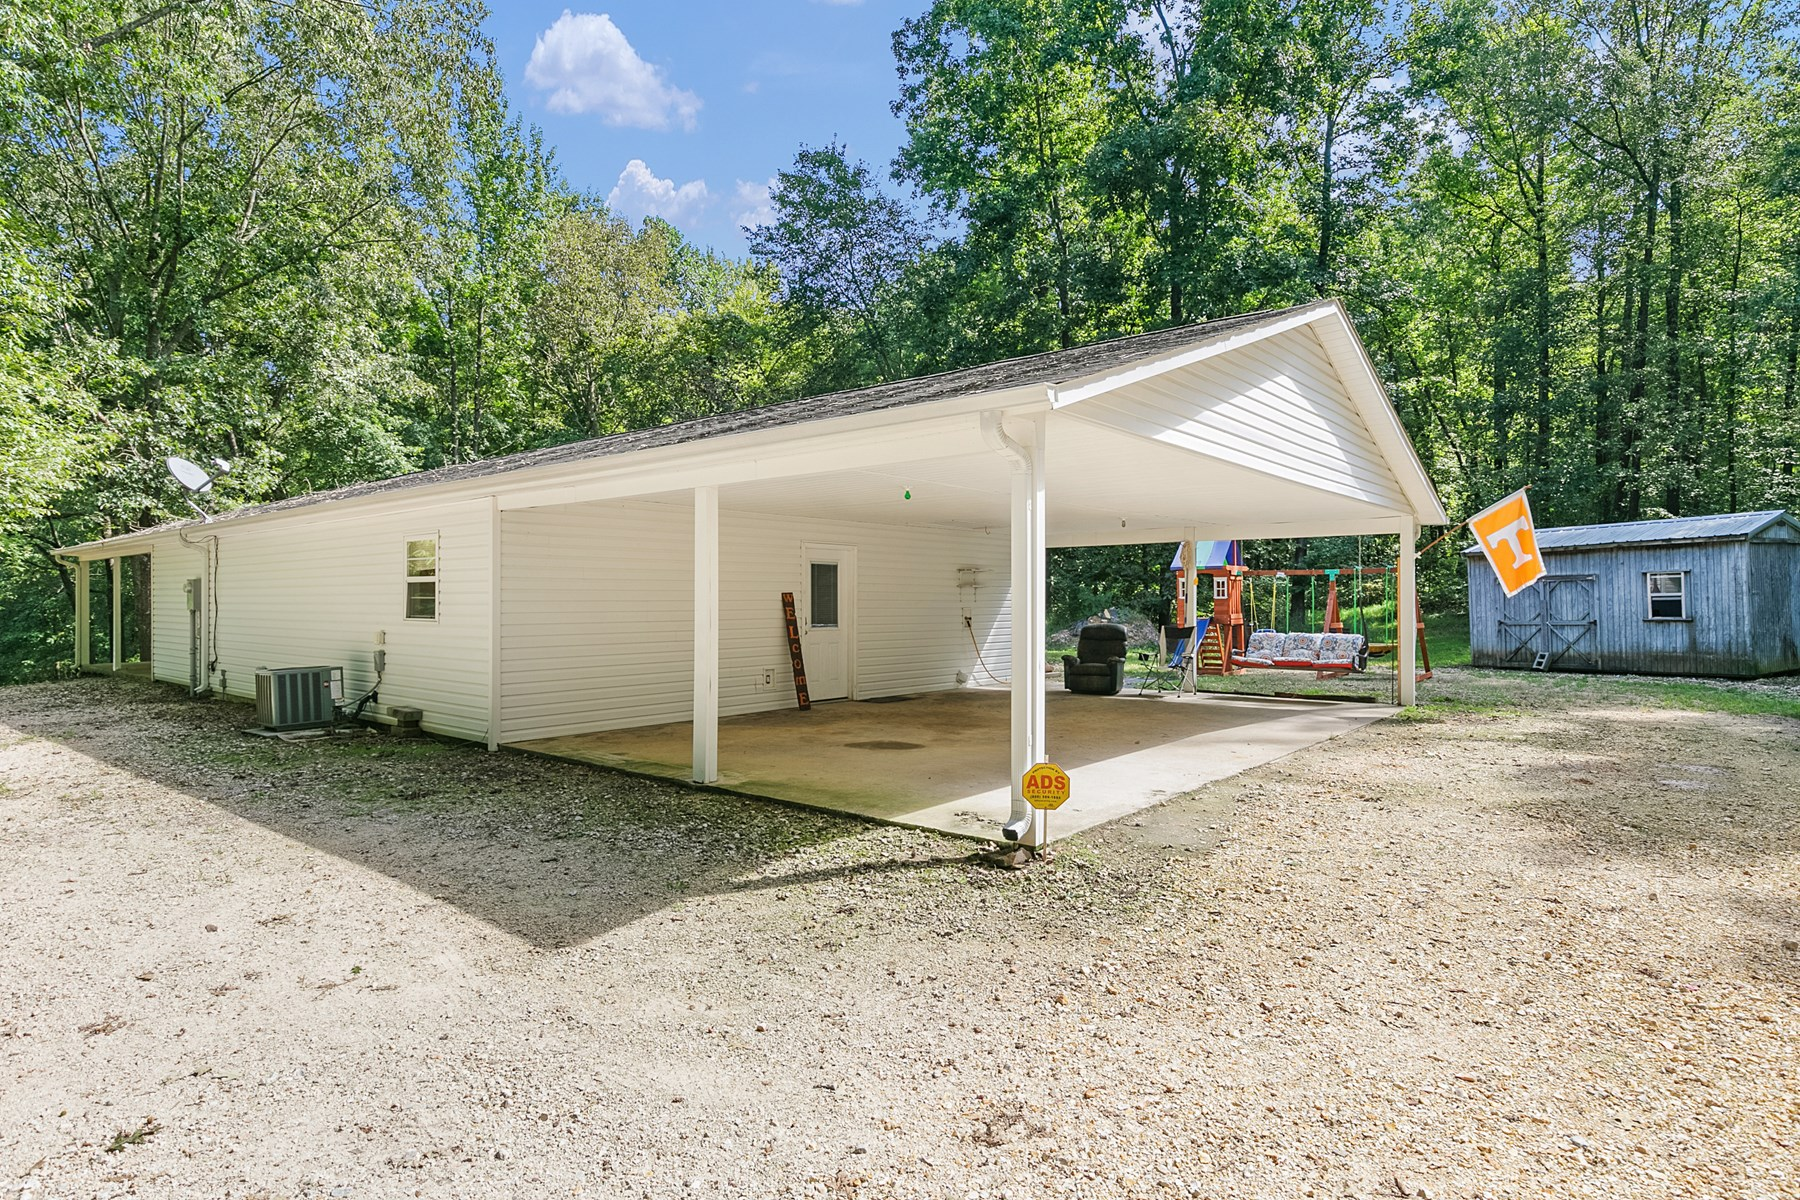 Country Home for Sale on 2.75 Acres - Milan School District